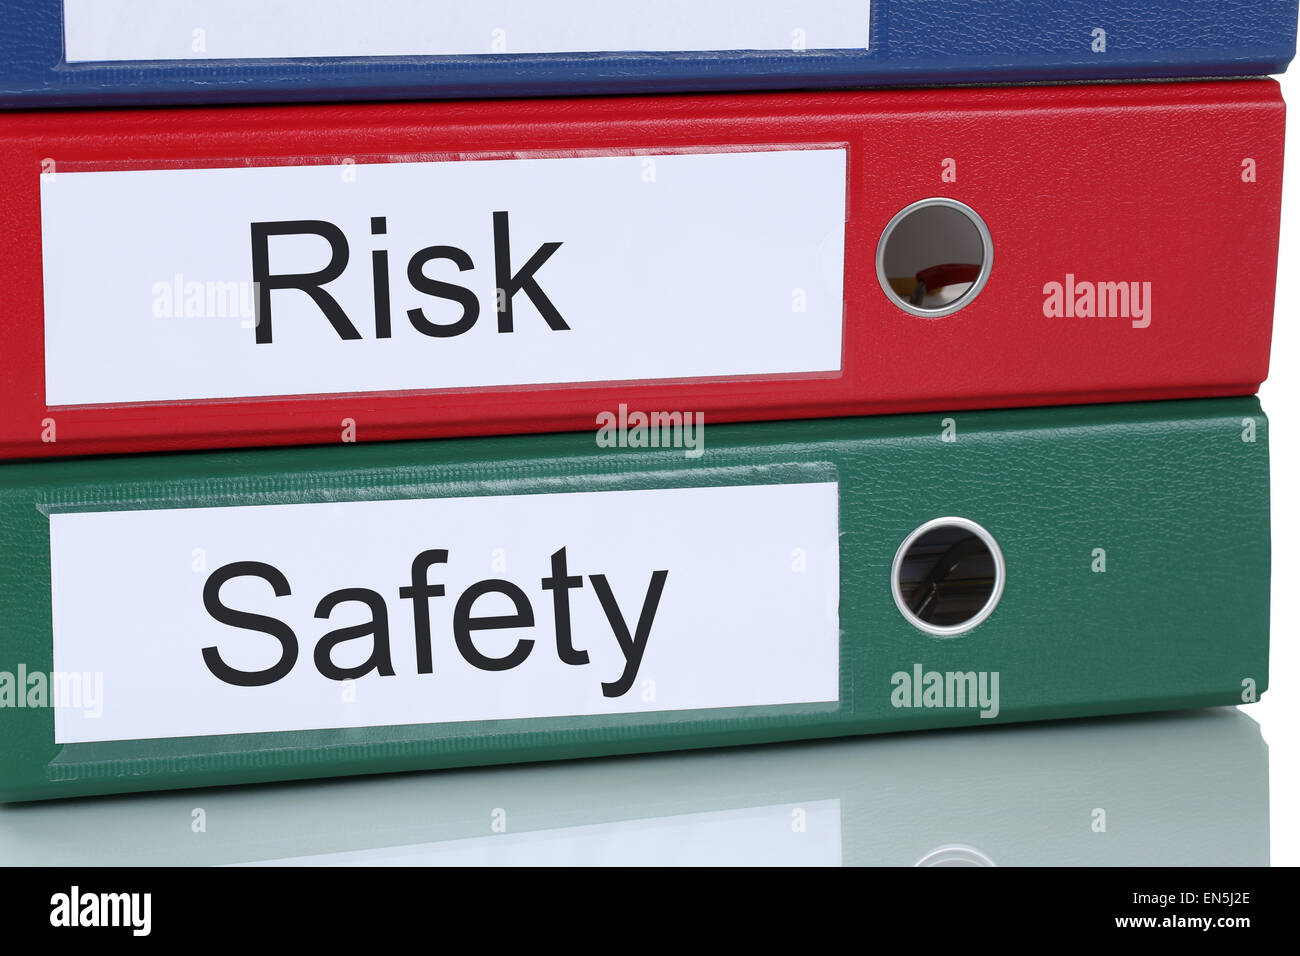 Risk and safety management analysis assessment  in company business concept - Stock Image